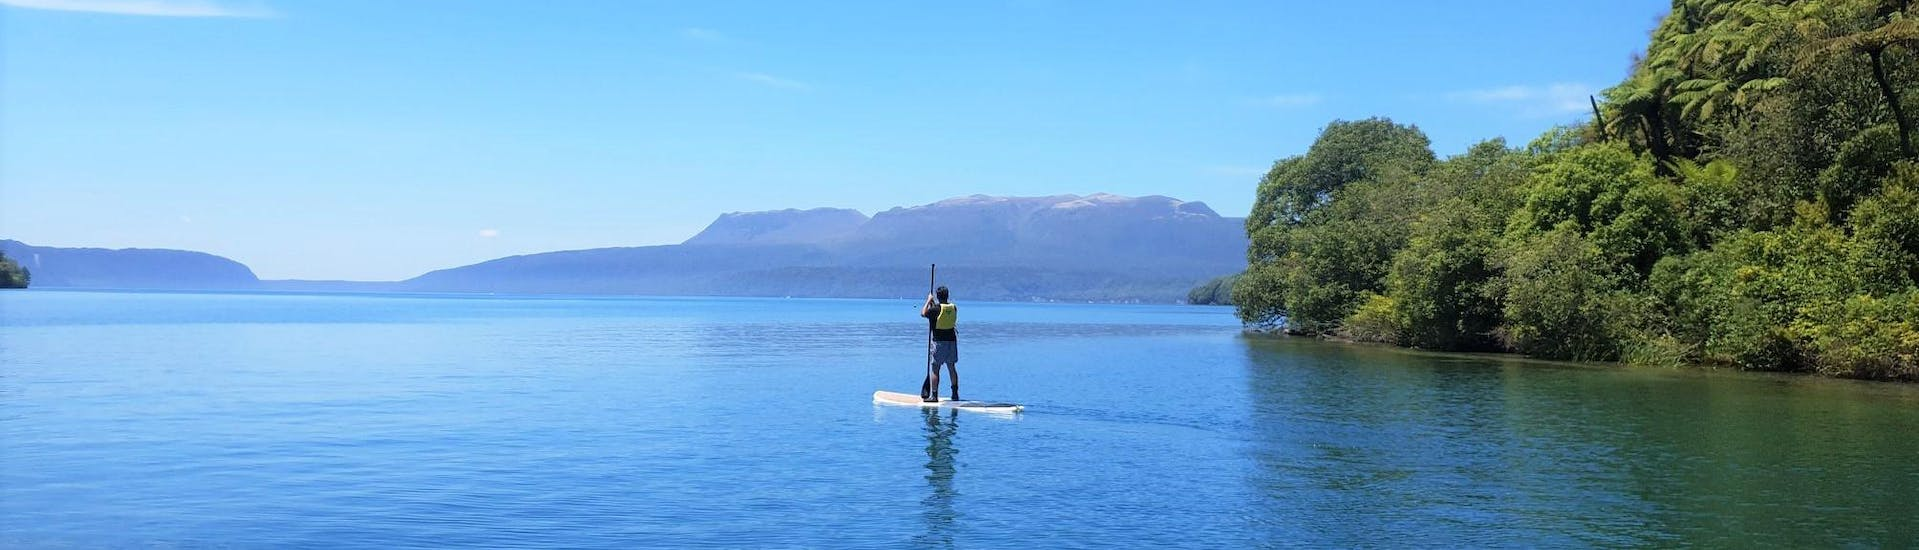 Paddle Board Rotorua - Adventure Tour